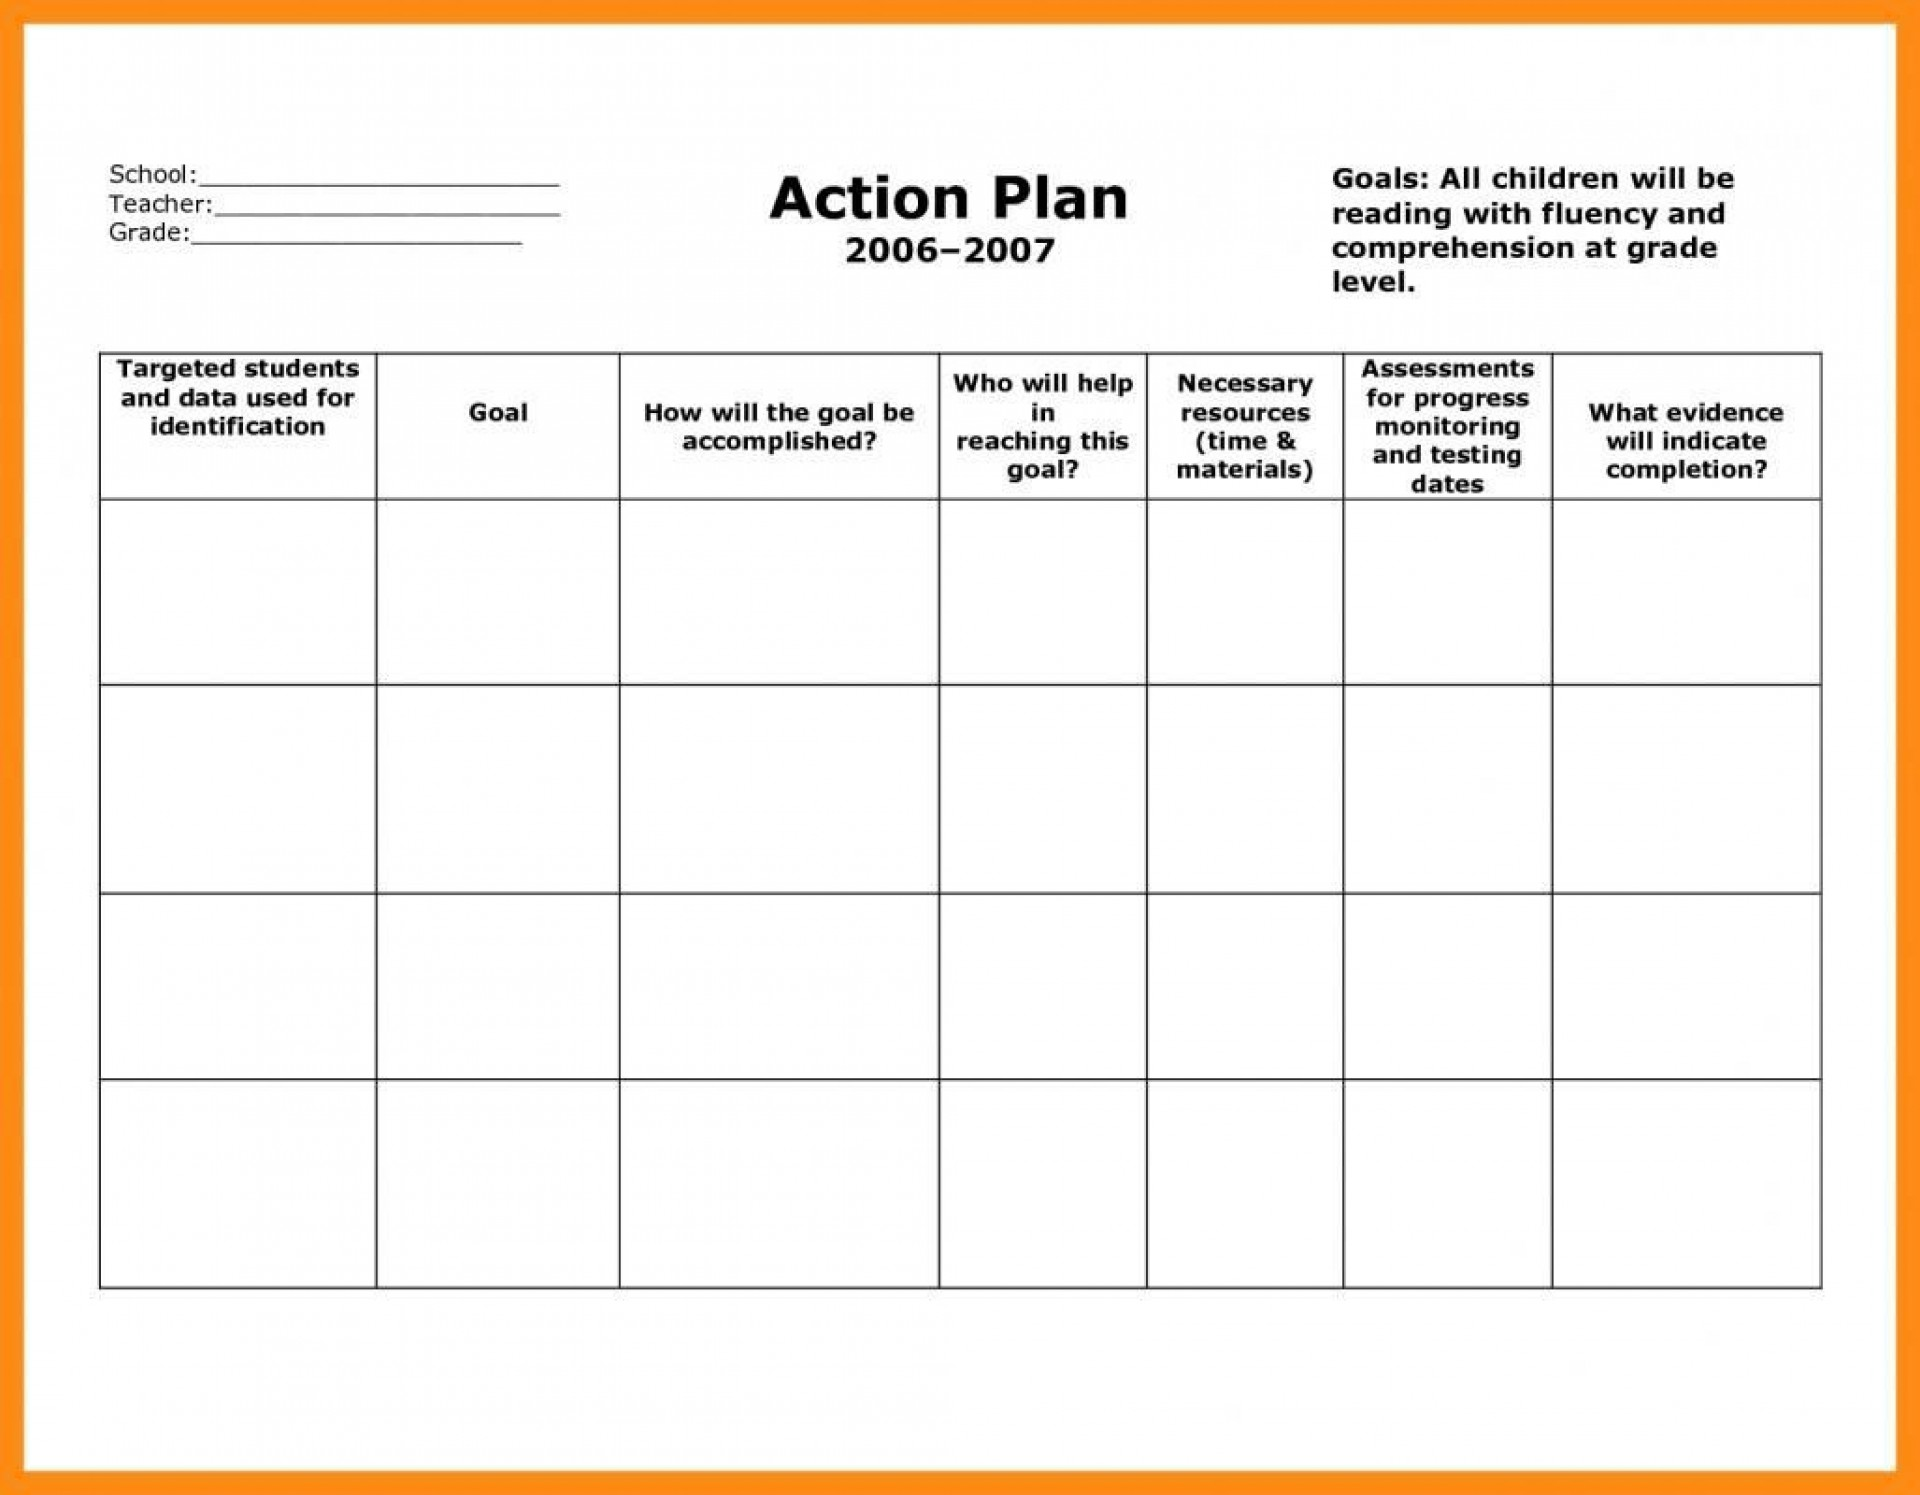 006 Archaicawful Smart Action Plan Template Highest Clarity  Download Nh Example Free1920